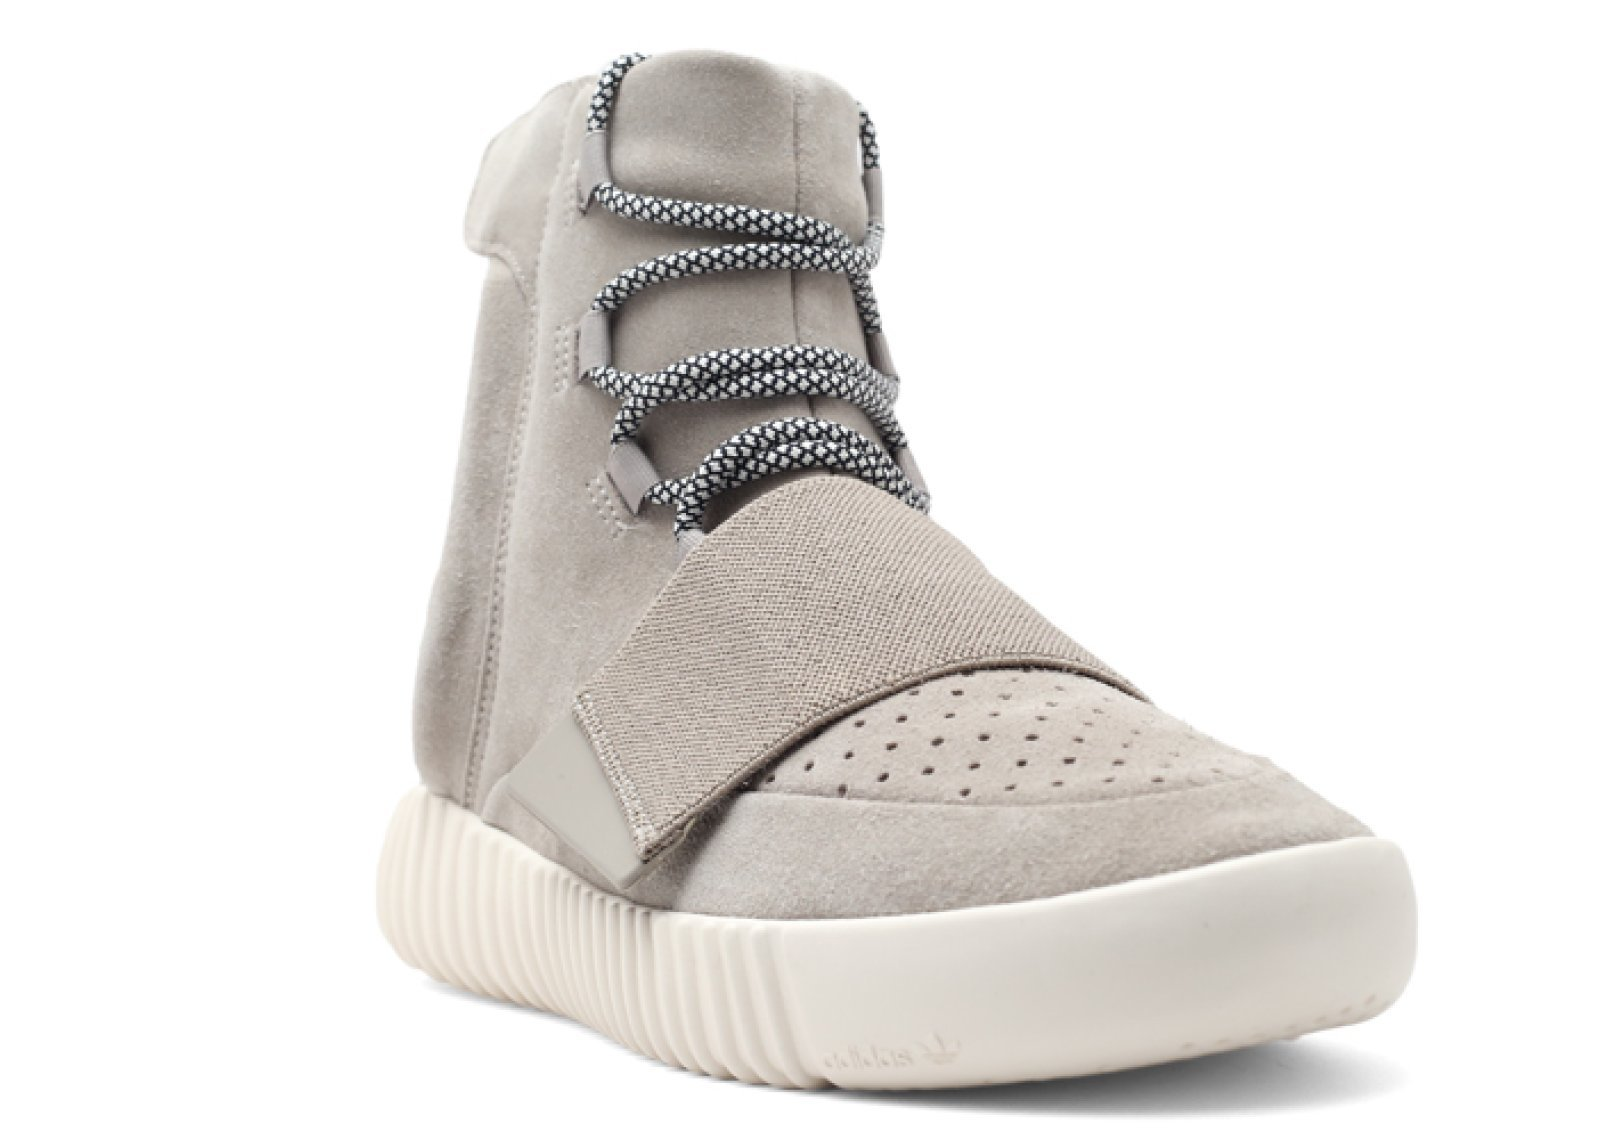 8efc024e223 Galleon - Adidas Yeezy Boots 750 Mens (USA 8) (UK 7.5) (EU 41)